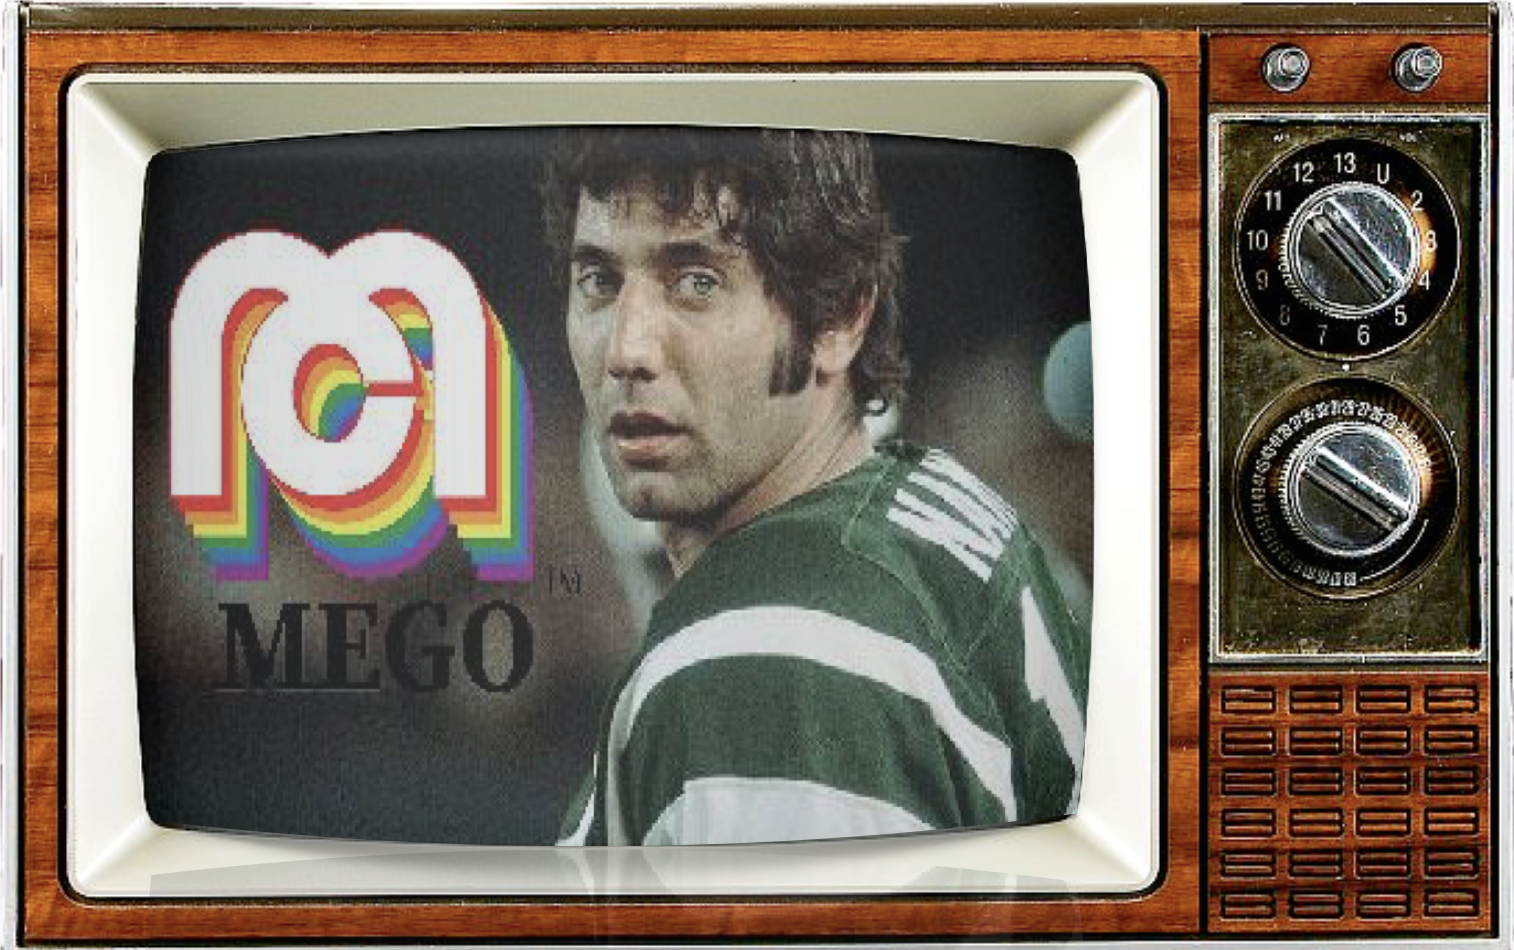 SMC Episode 77: Broadway Joe Namath -The Worlds First Action Figure- A MEGO Toy Story